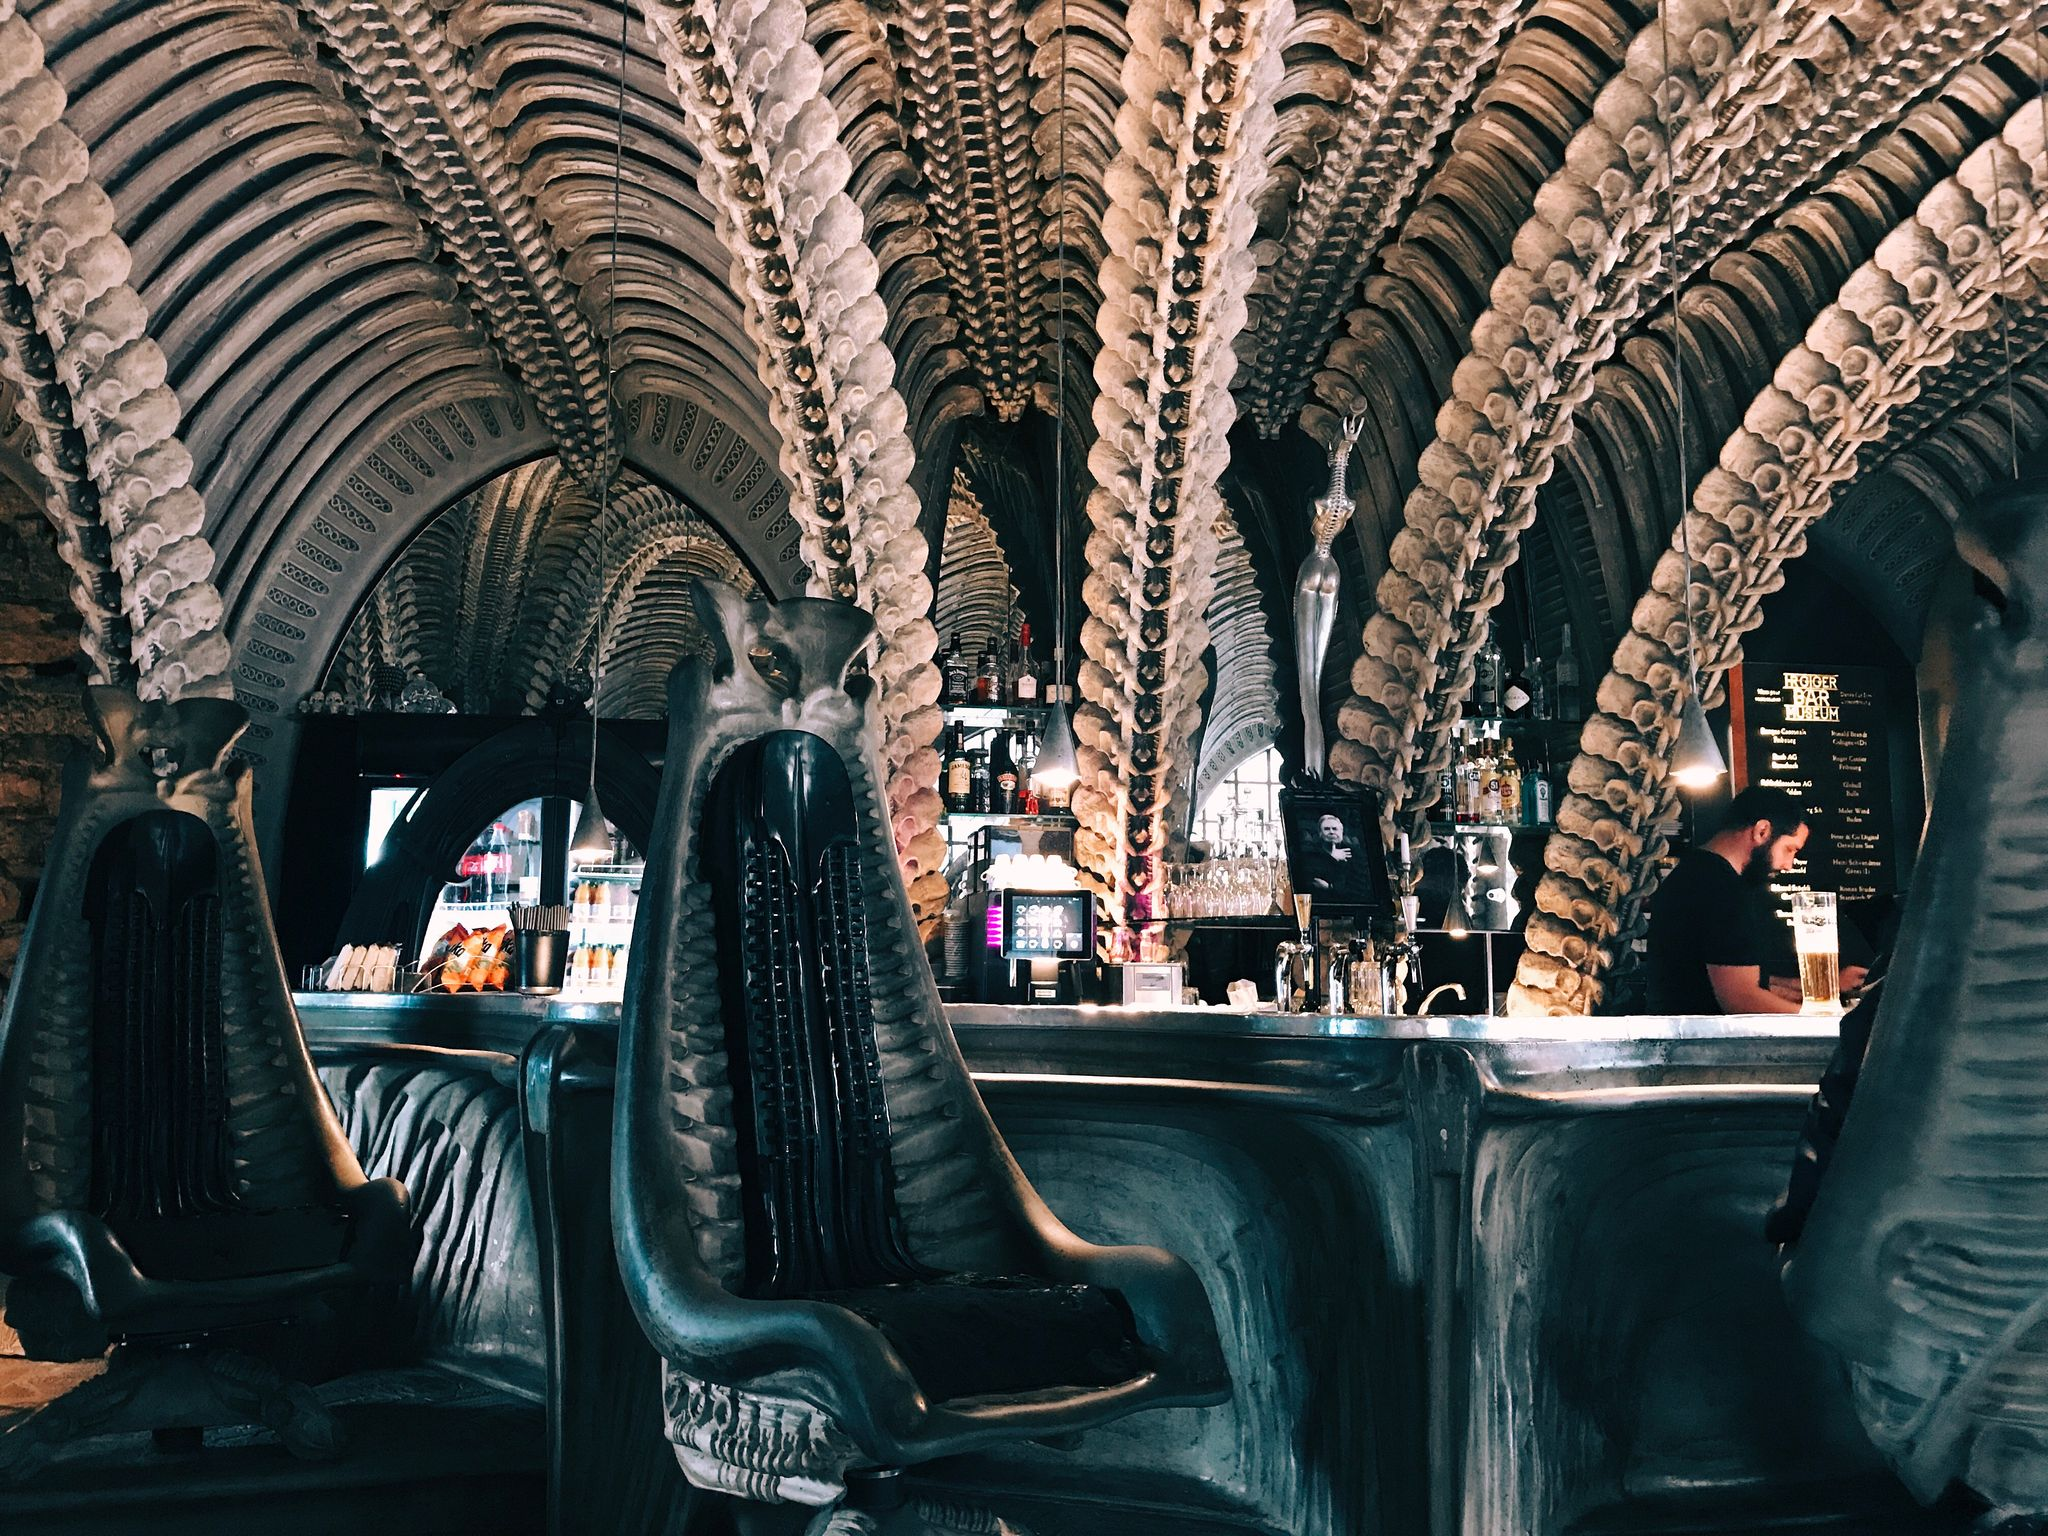 A photo of a bar, the walls look like they're made of spines and curve up and over. Two very high-backed chairs are in front of the bar and they also look like they're made from interlocking bones.